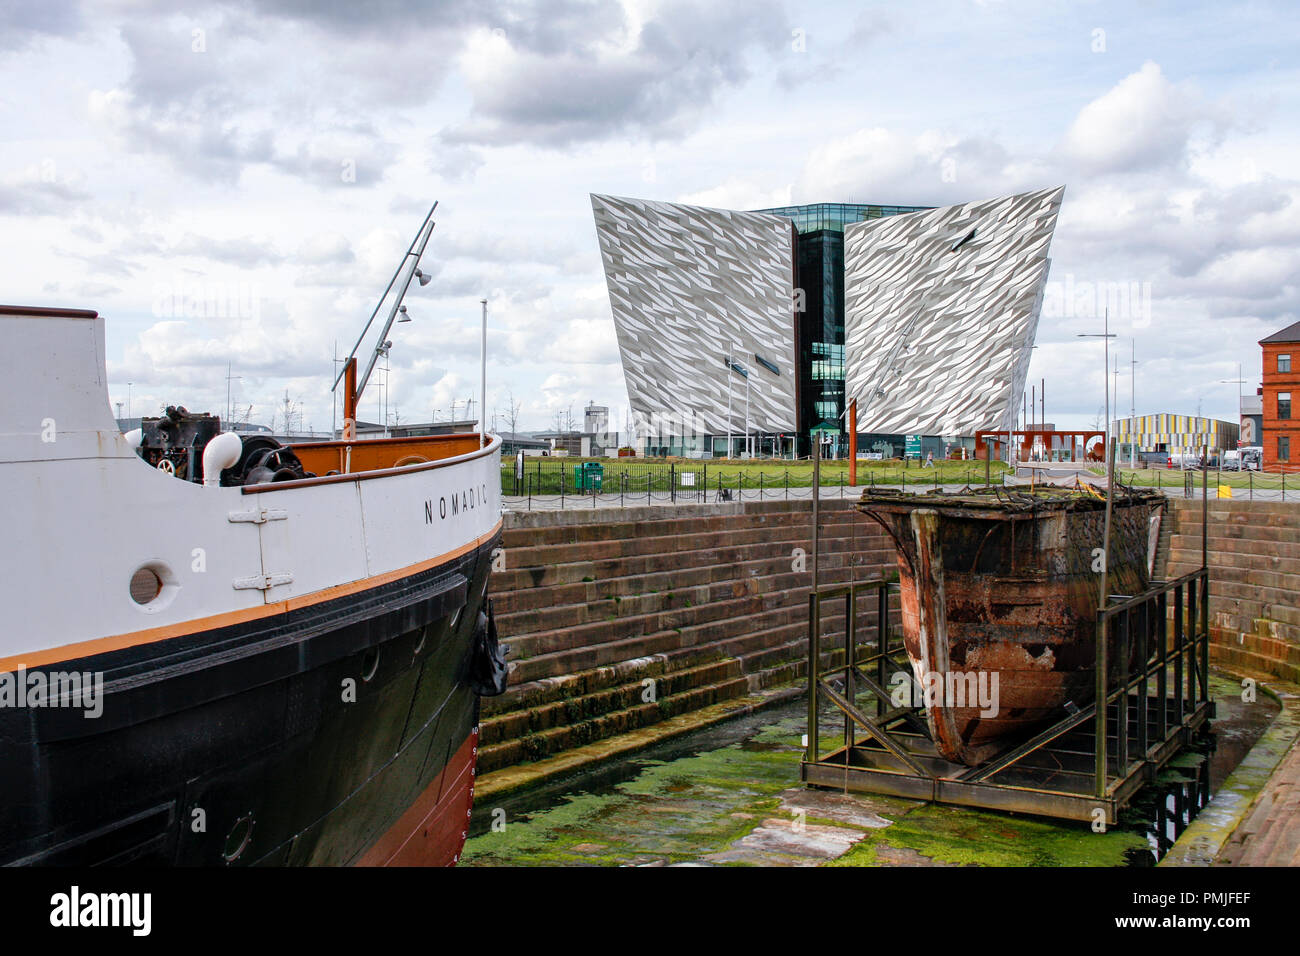 SS Nomadic, the last remaining ship of the White Star Line and the Titanic Belfast museum in the Titanic Quarter of Belfast, Northern Ireland. Stock Photo